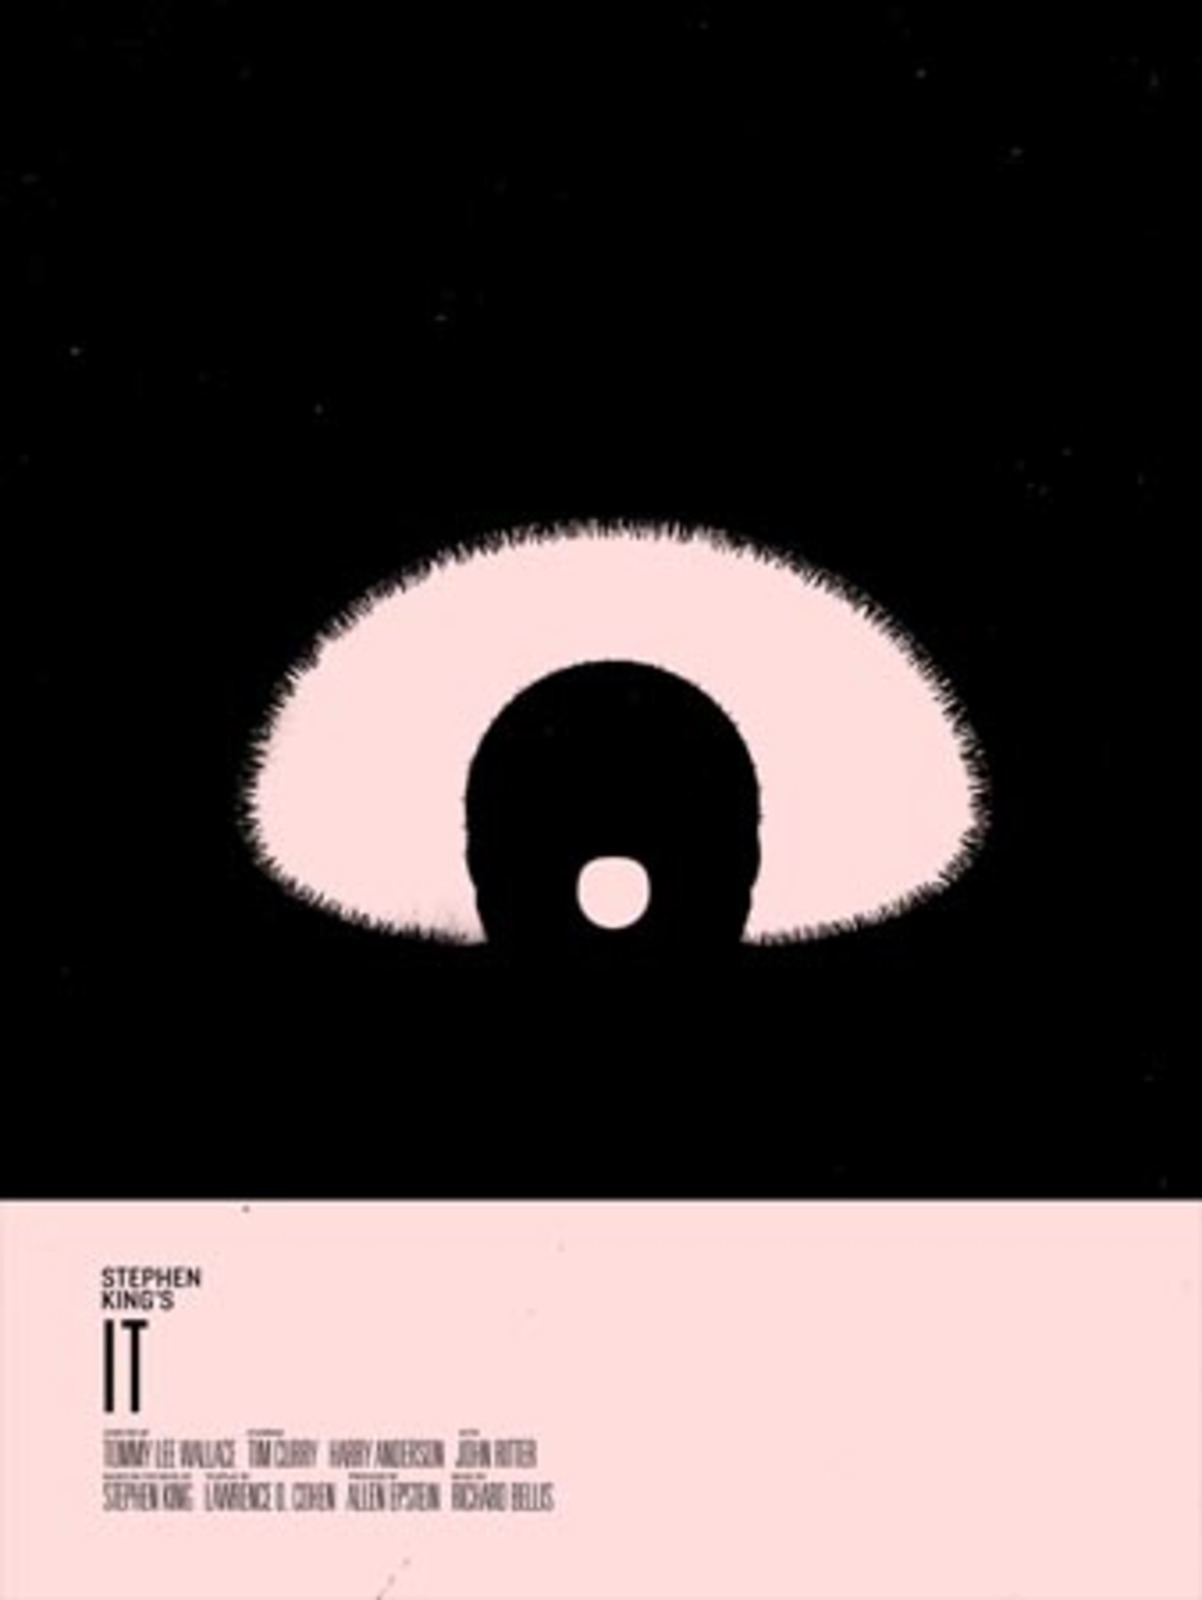 Stephen King Posters Cool Hunting - Minimal movie posters nick barclay